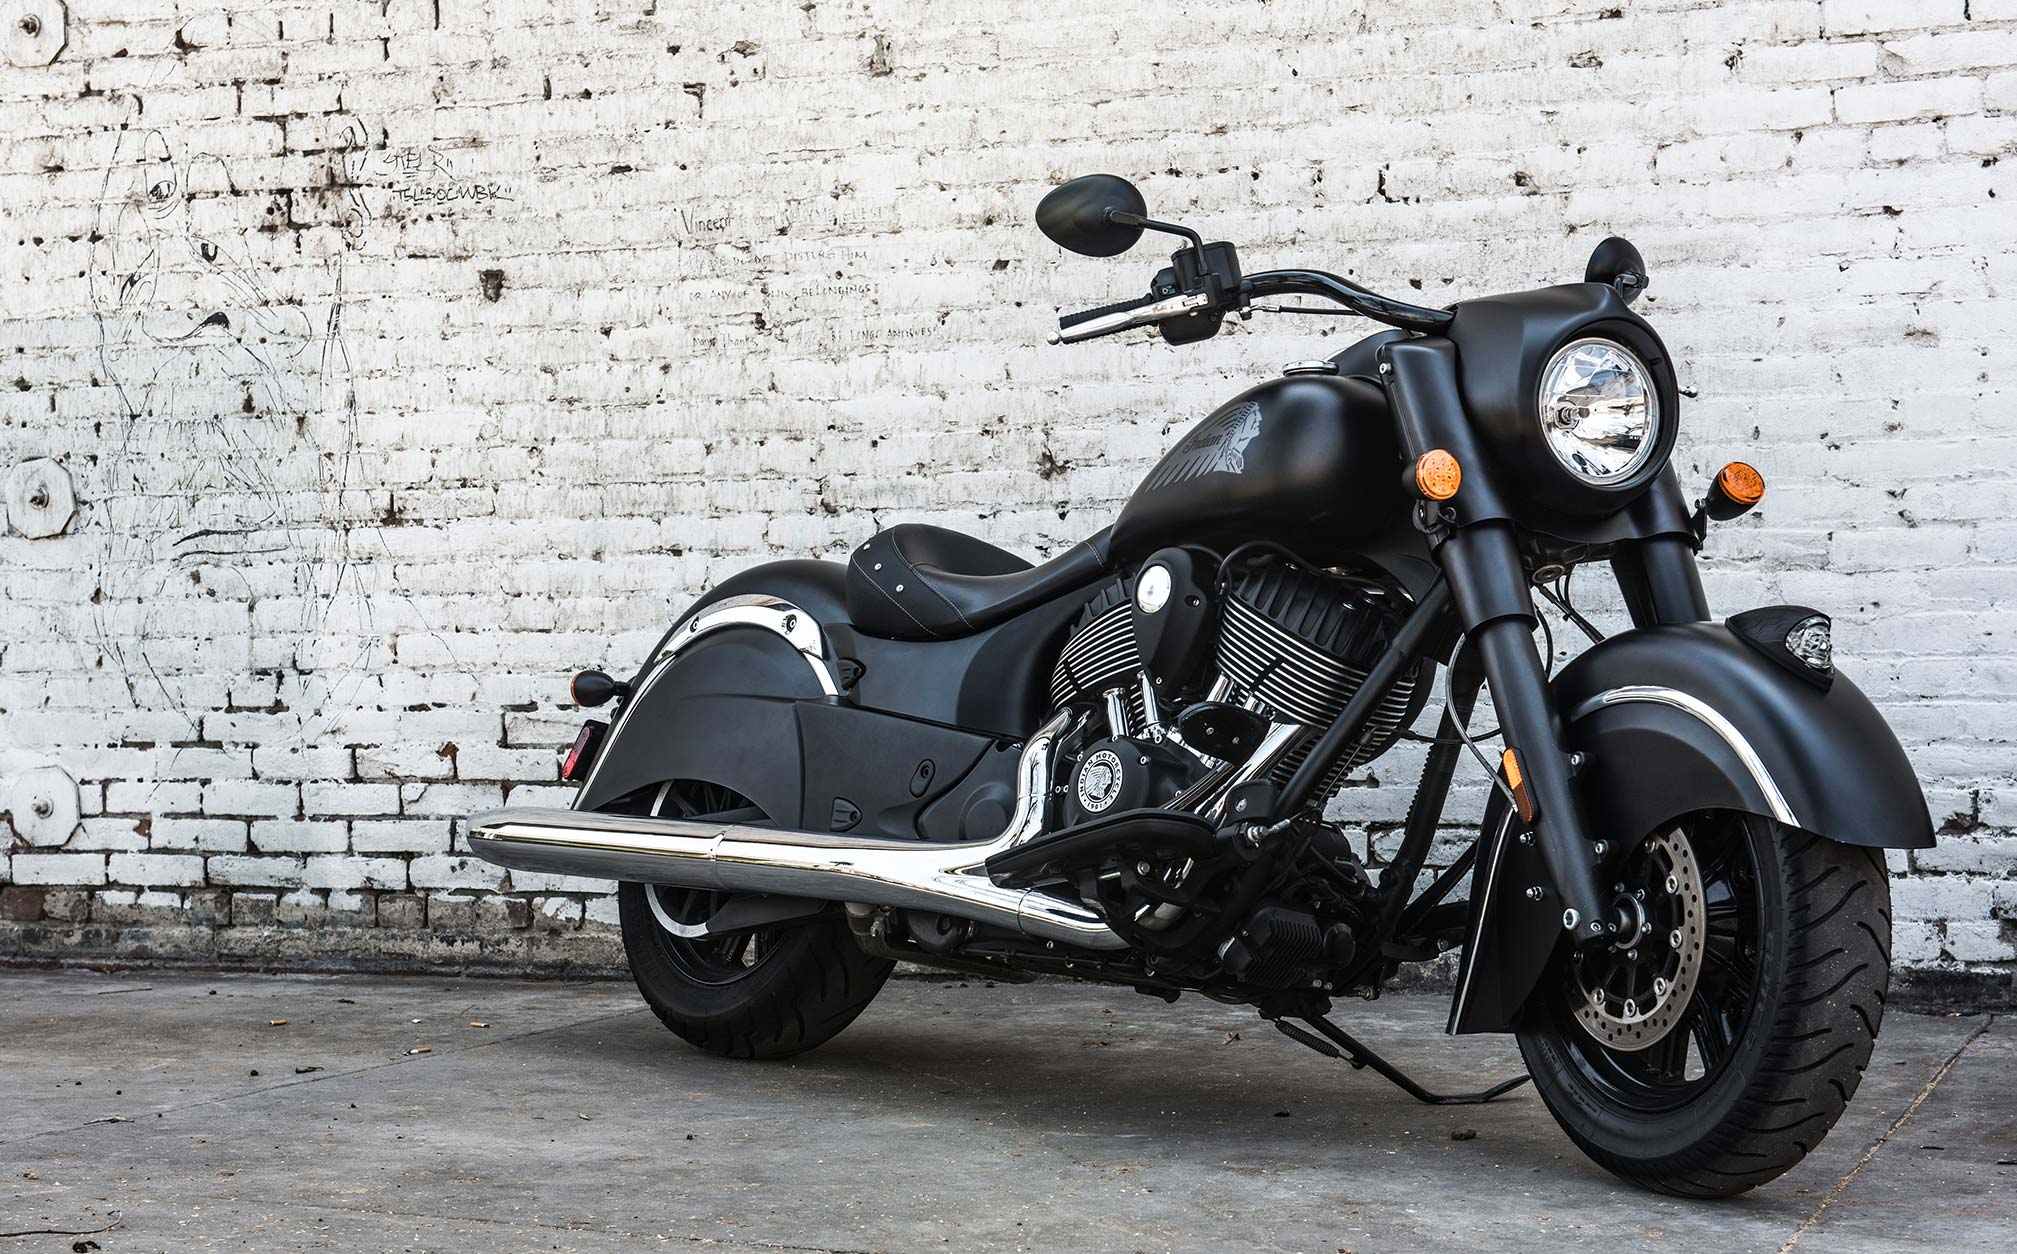 2018 Indian Motorcycle Chieftain Dark Horse Abs Thunder